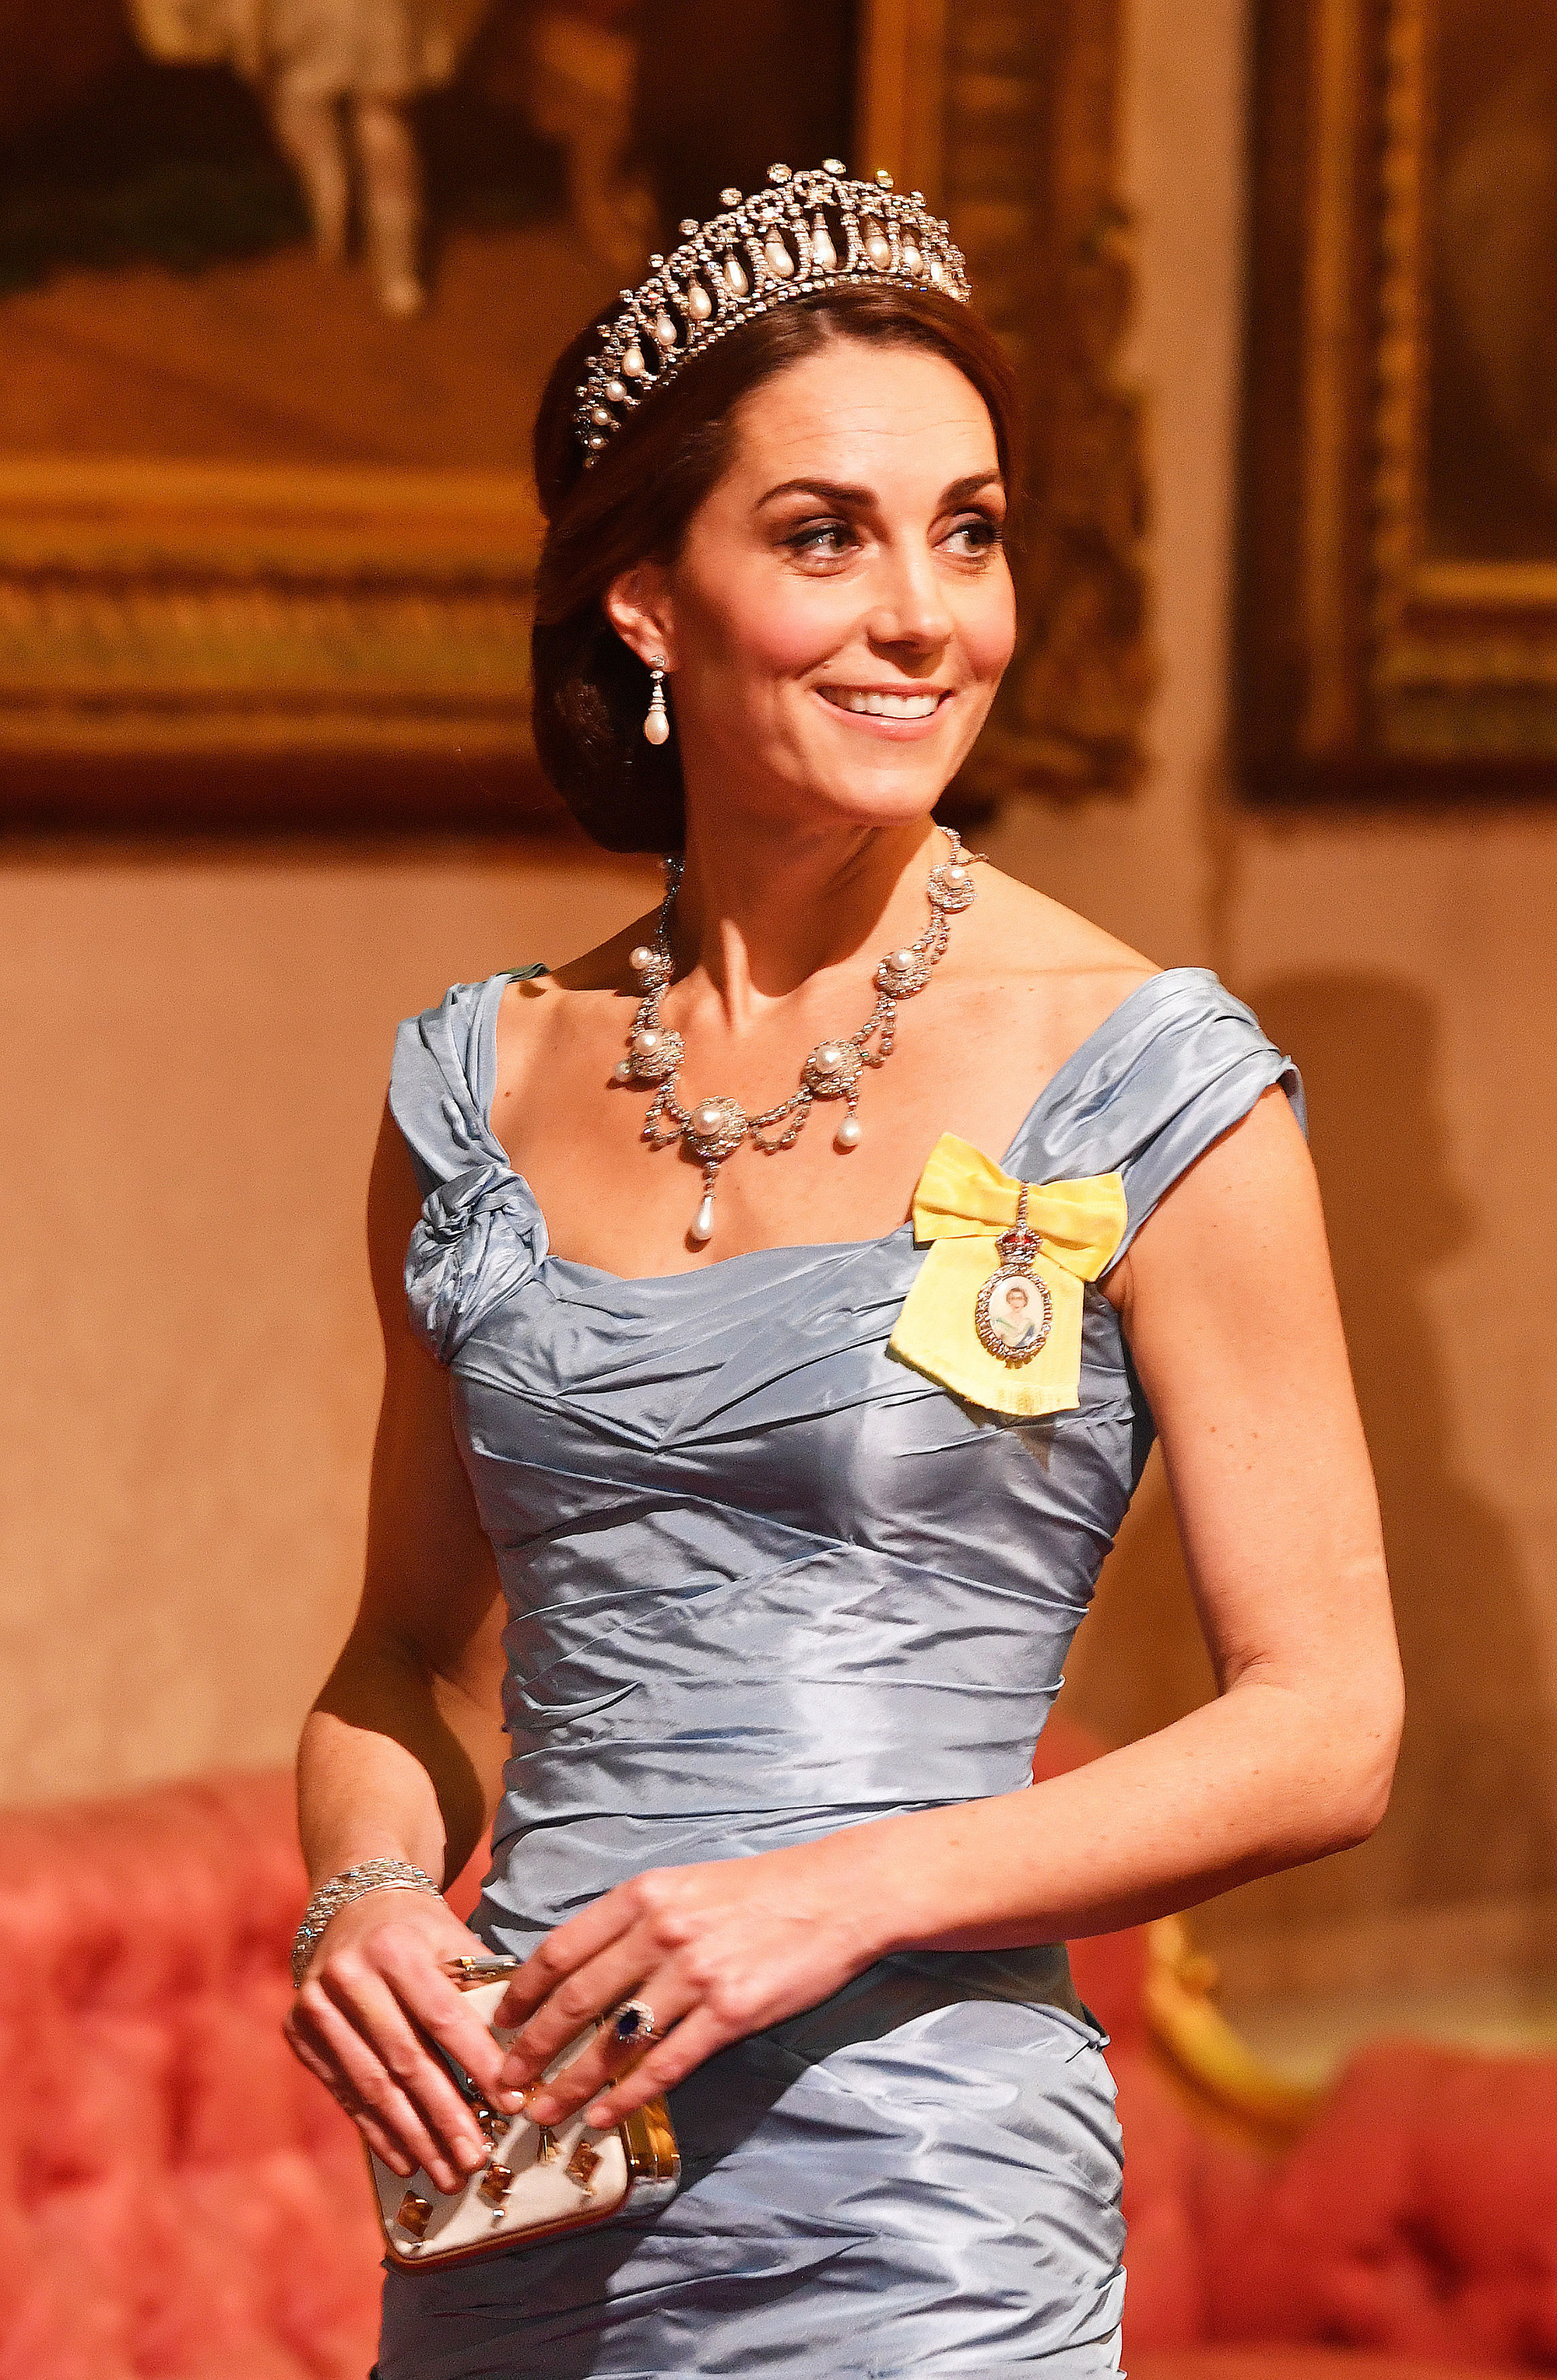 """Royal Family Nicknames - Kate revealed a hilarious nickname she had growing up — and shared with one of her pets — while visiting St. Andrew's School in Pangbourne, England, in November 2012. """"There was one called Pip and one called Squeak, because my sister was called 'Pippa' and I was 'Squeak,'"""" she said of the two guinea pigs her family had when she was young."""